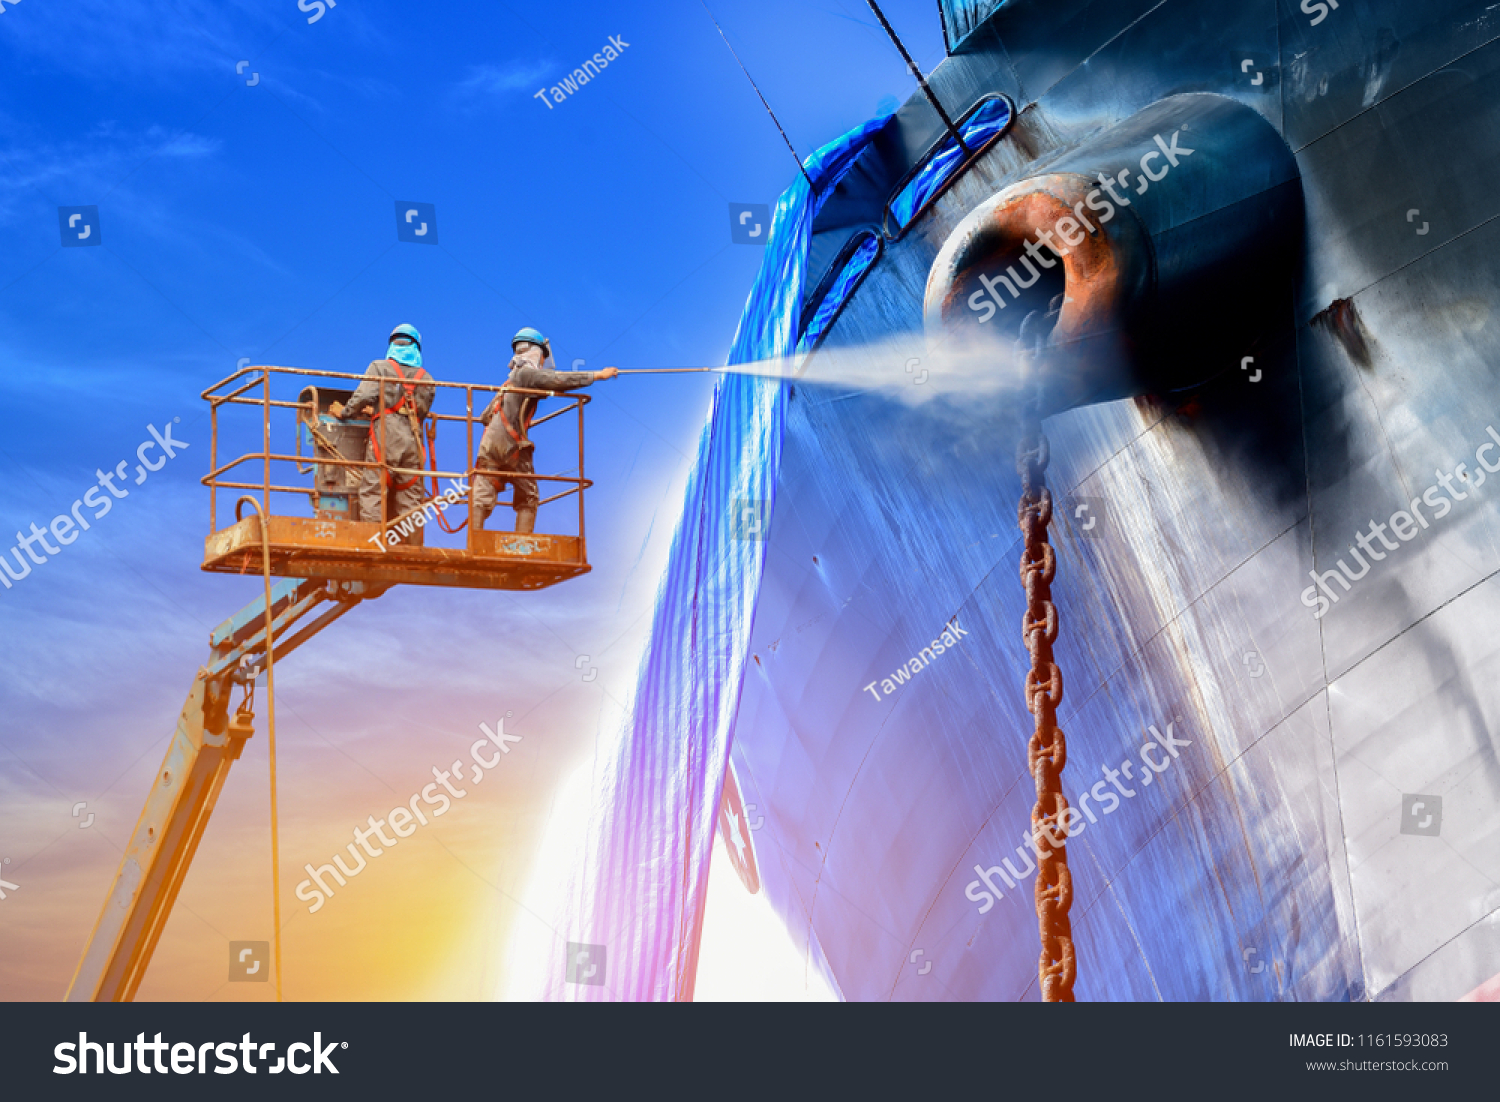 stock photo ship cleaning by worker two man with safety harness used pressure washer cleaning ship on trucks 1161593083 ship cleaning by worker two man stock photo (edit now) 1161593083